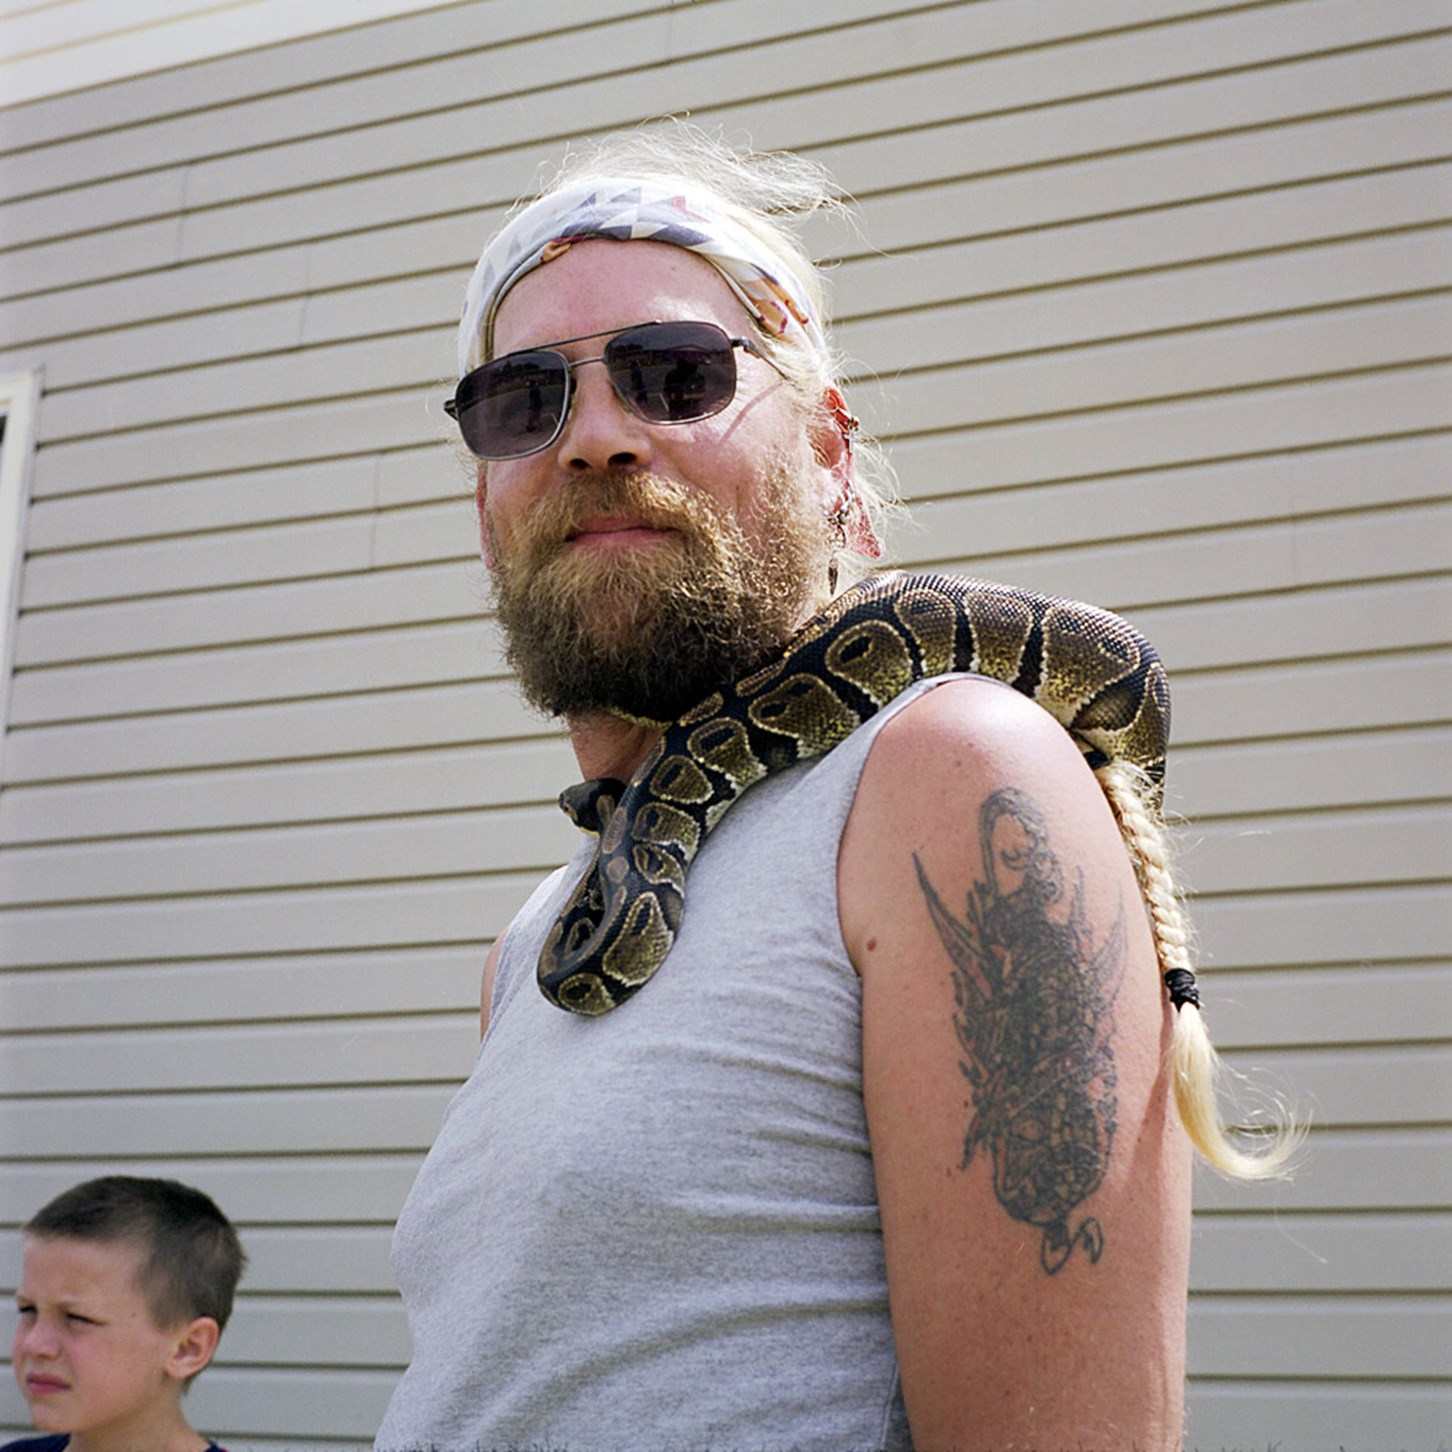 A Man With A Snake On His Shoulder, Birnamwood, Wisconsin, June 2010